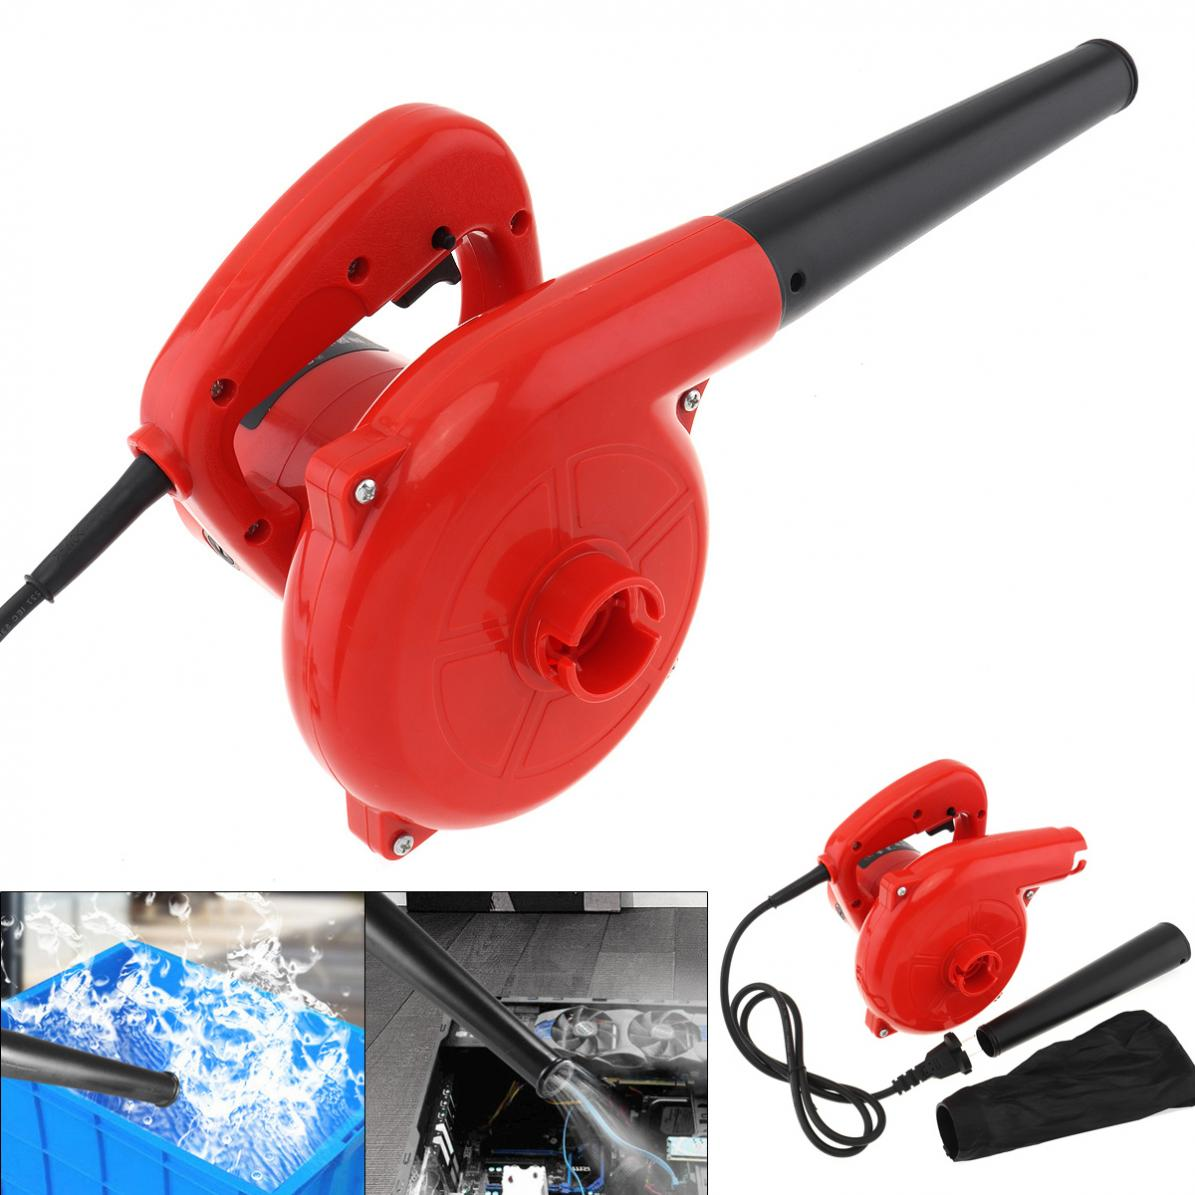 220V 600W 16000rpm Multifunctional Portable Electric Blower Duster Dust Collector with Suction Head and Bag for Removing Dust|Blowers| |  - title=